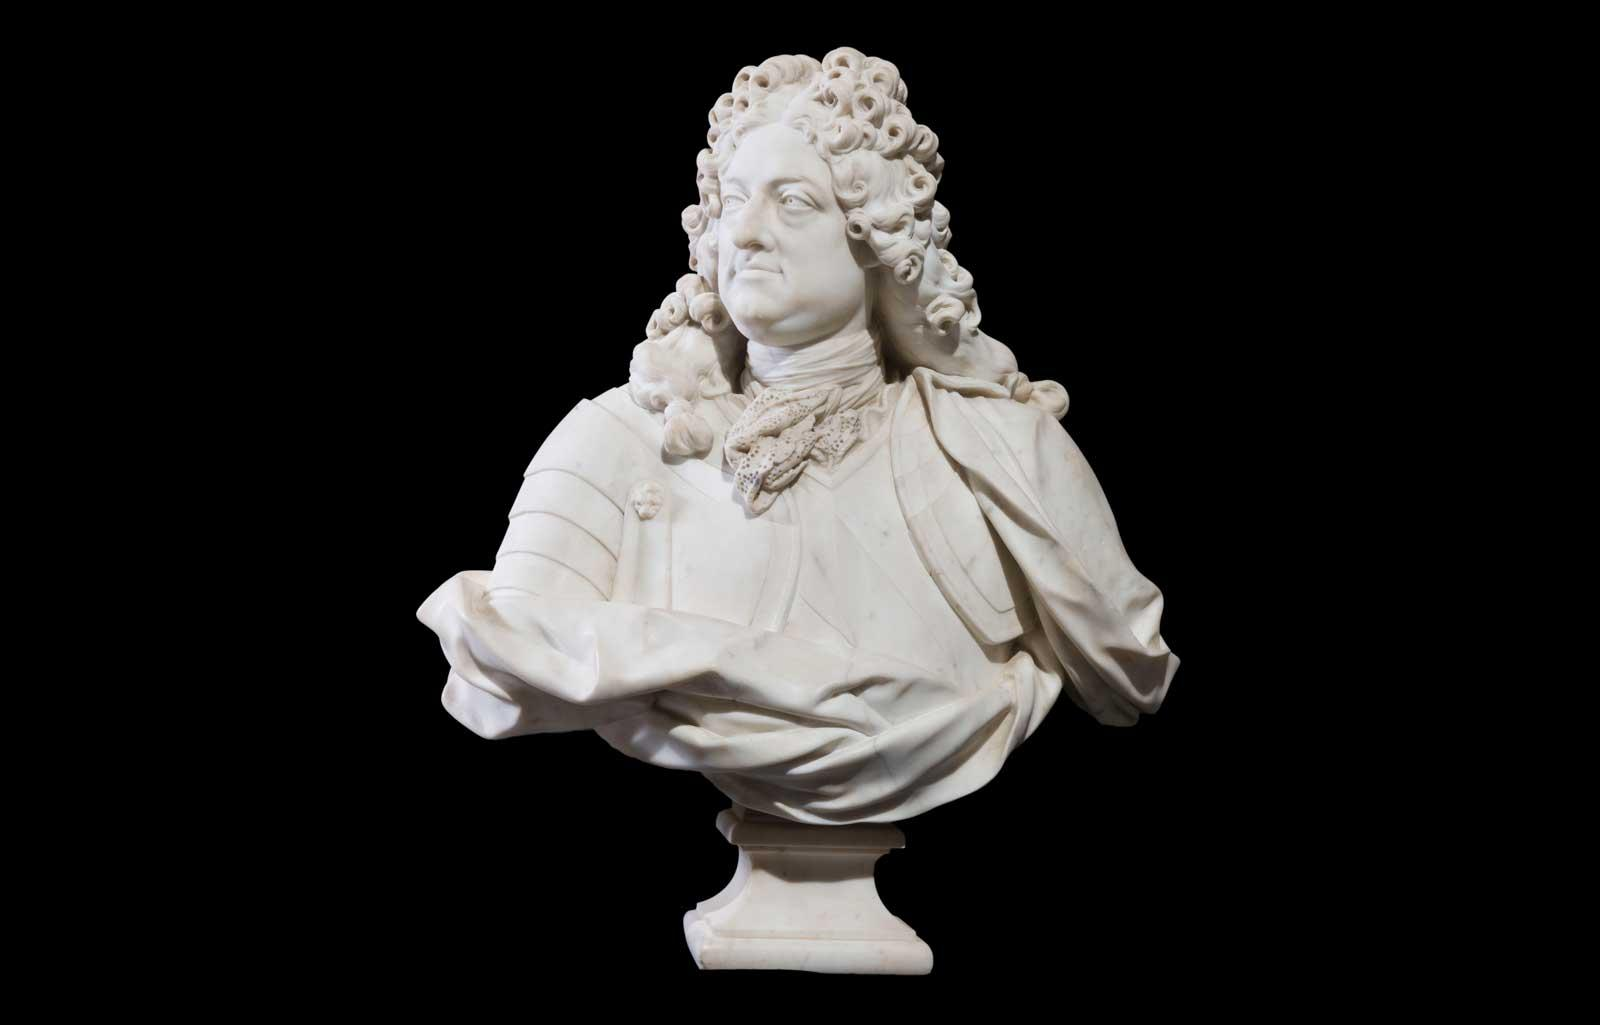 Philippe II, duc d'Orléans, Regent of France (1674- 1723), 1720, Jean-Louis Lemoyne